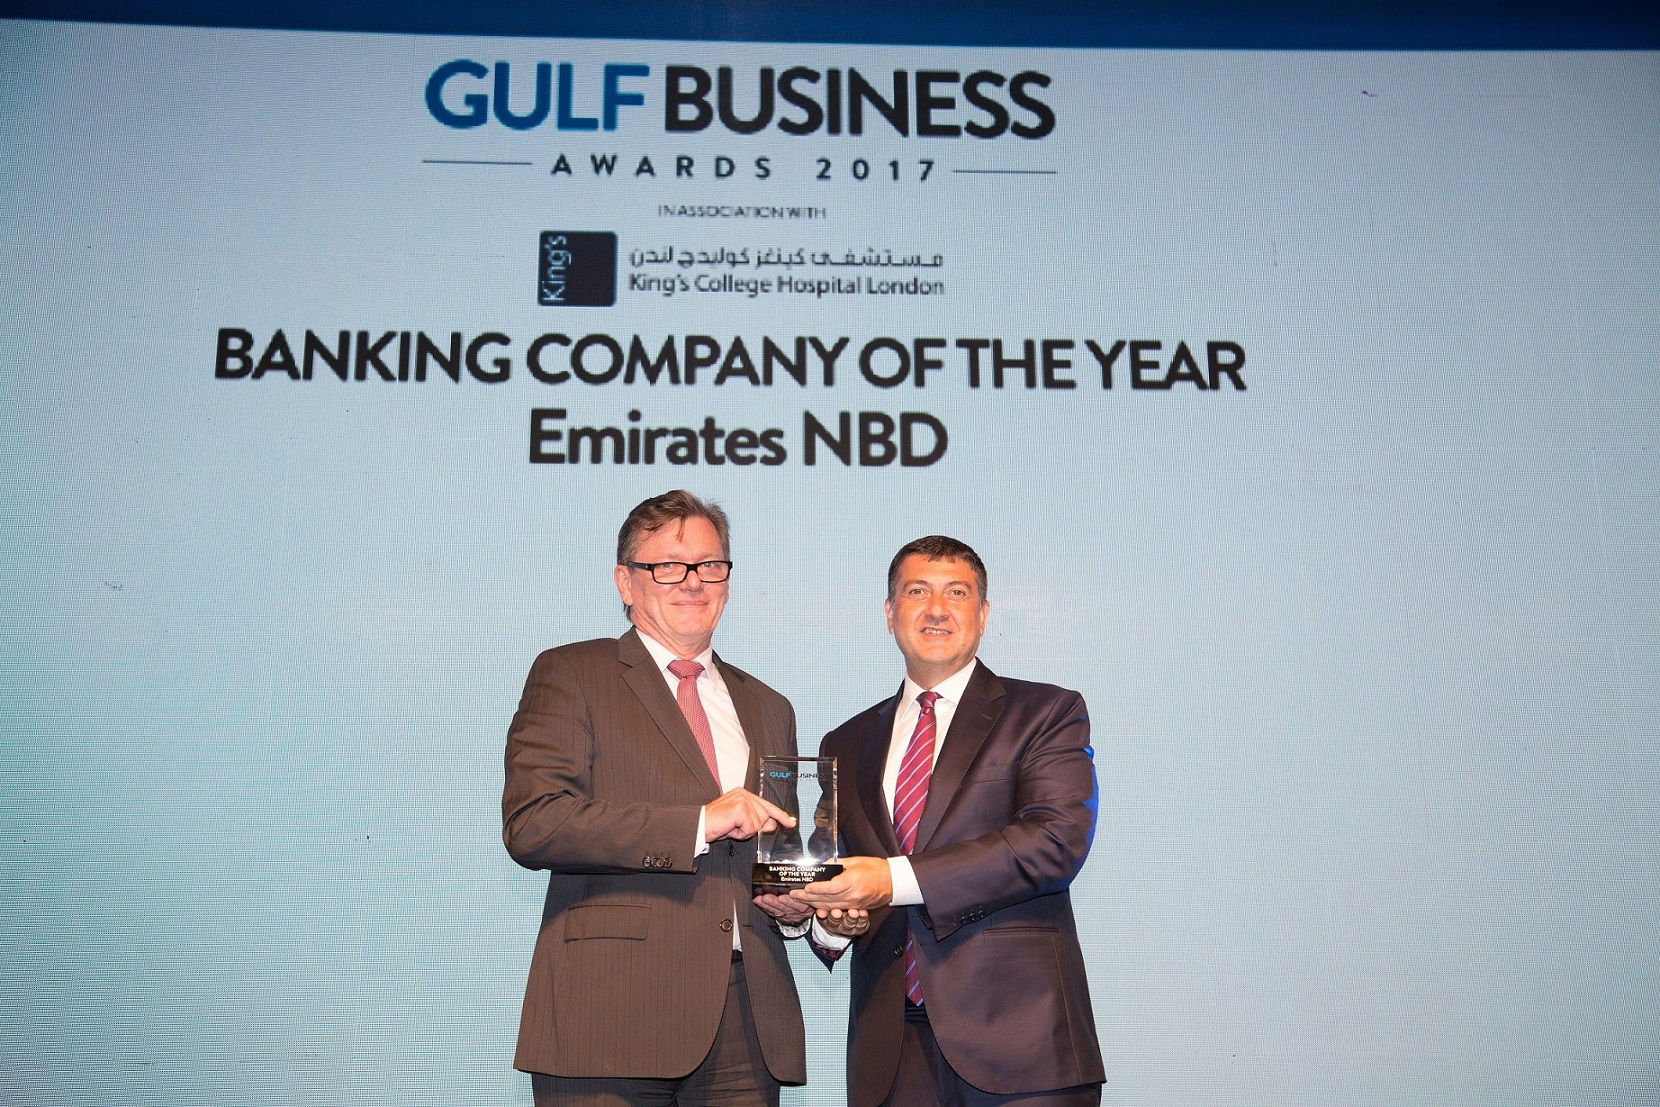 Emirates NBD Named 'Banking Company of the Year' by Gulf Business